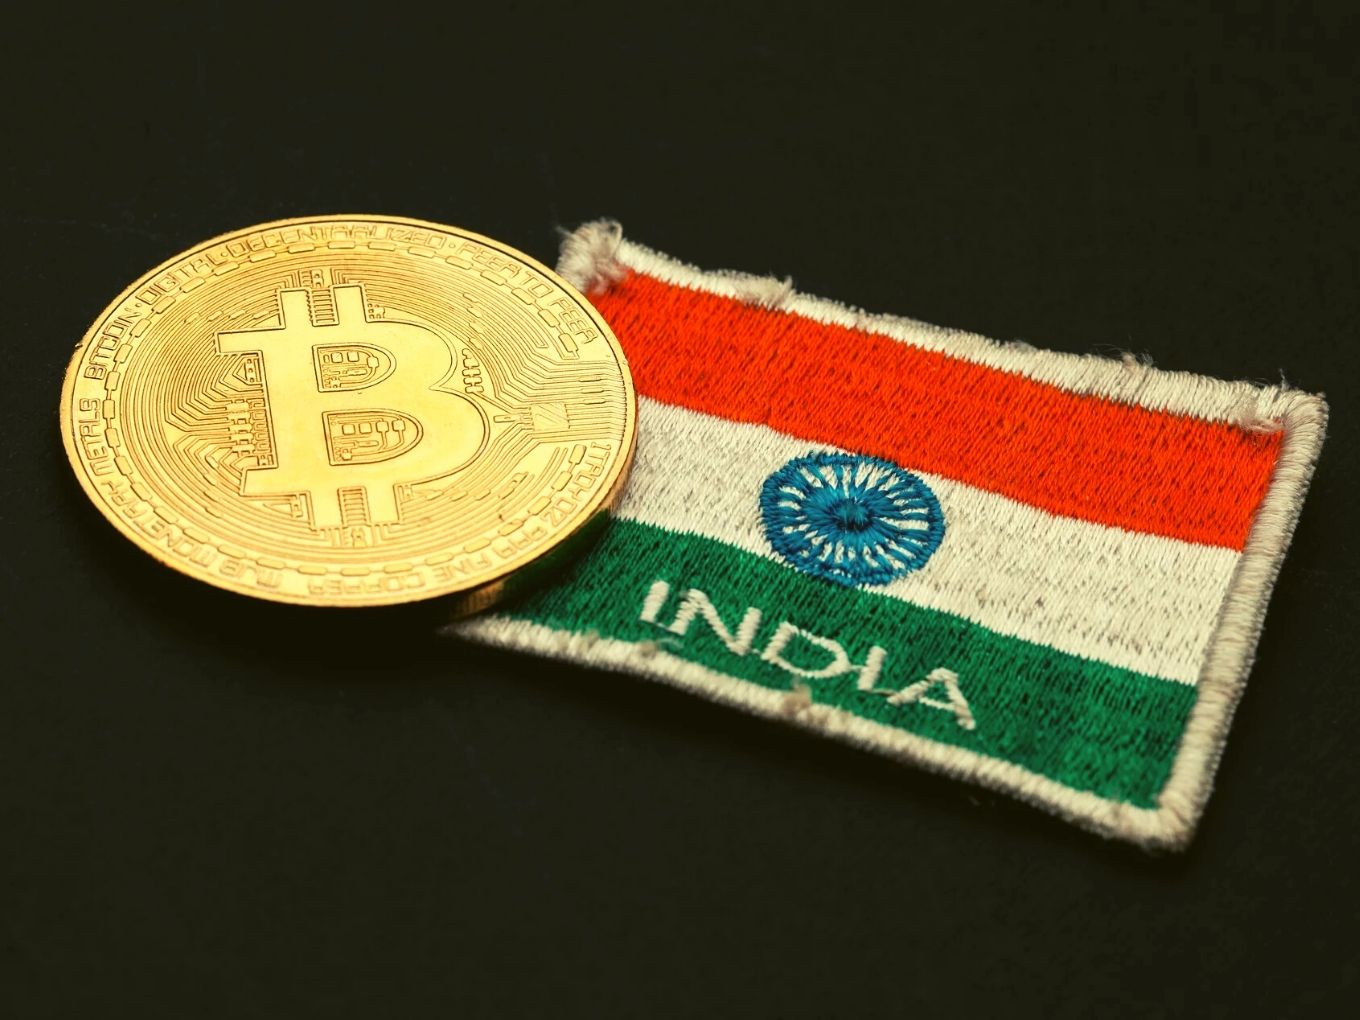 Cryptocurrency Vs RBI: The Supreme Court Judgement And The Aftermath